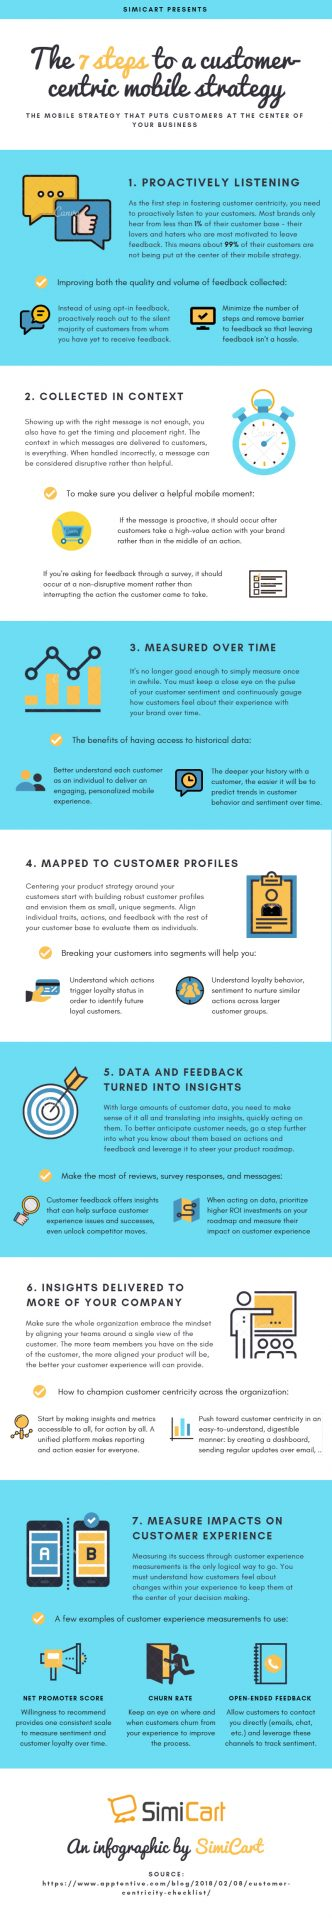 The 7 steps to a customer-centric mobile strategy [infographic]